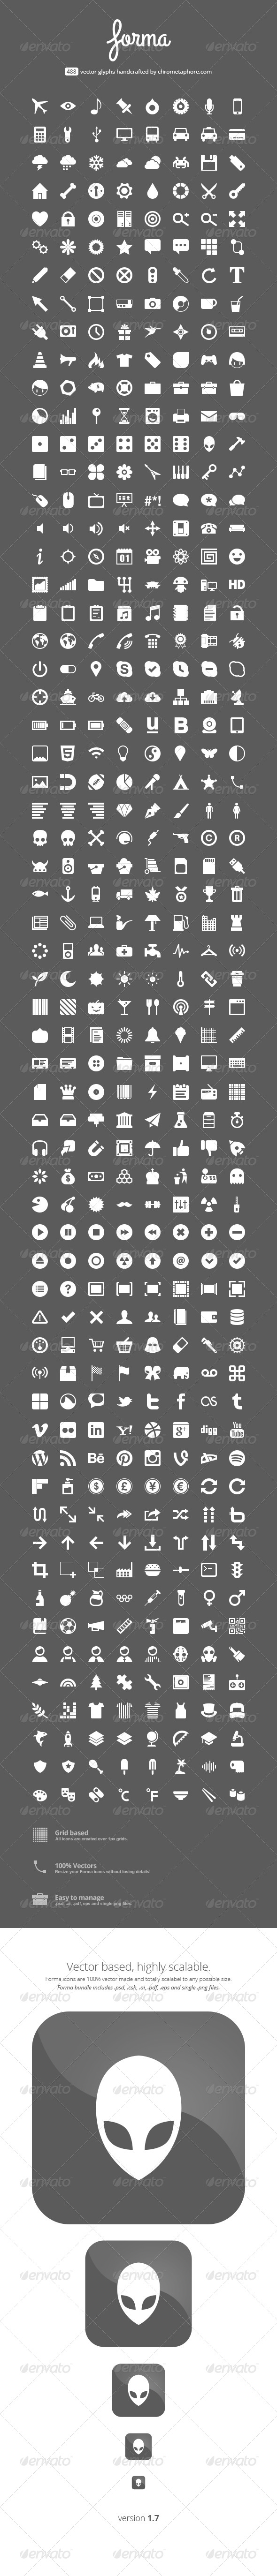 Forma - 488 Icons - Icons